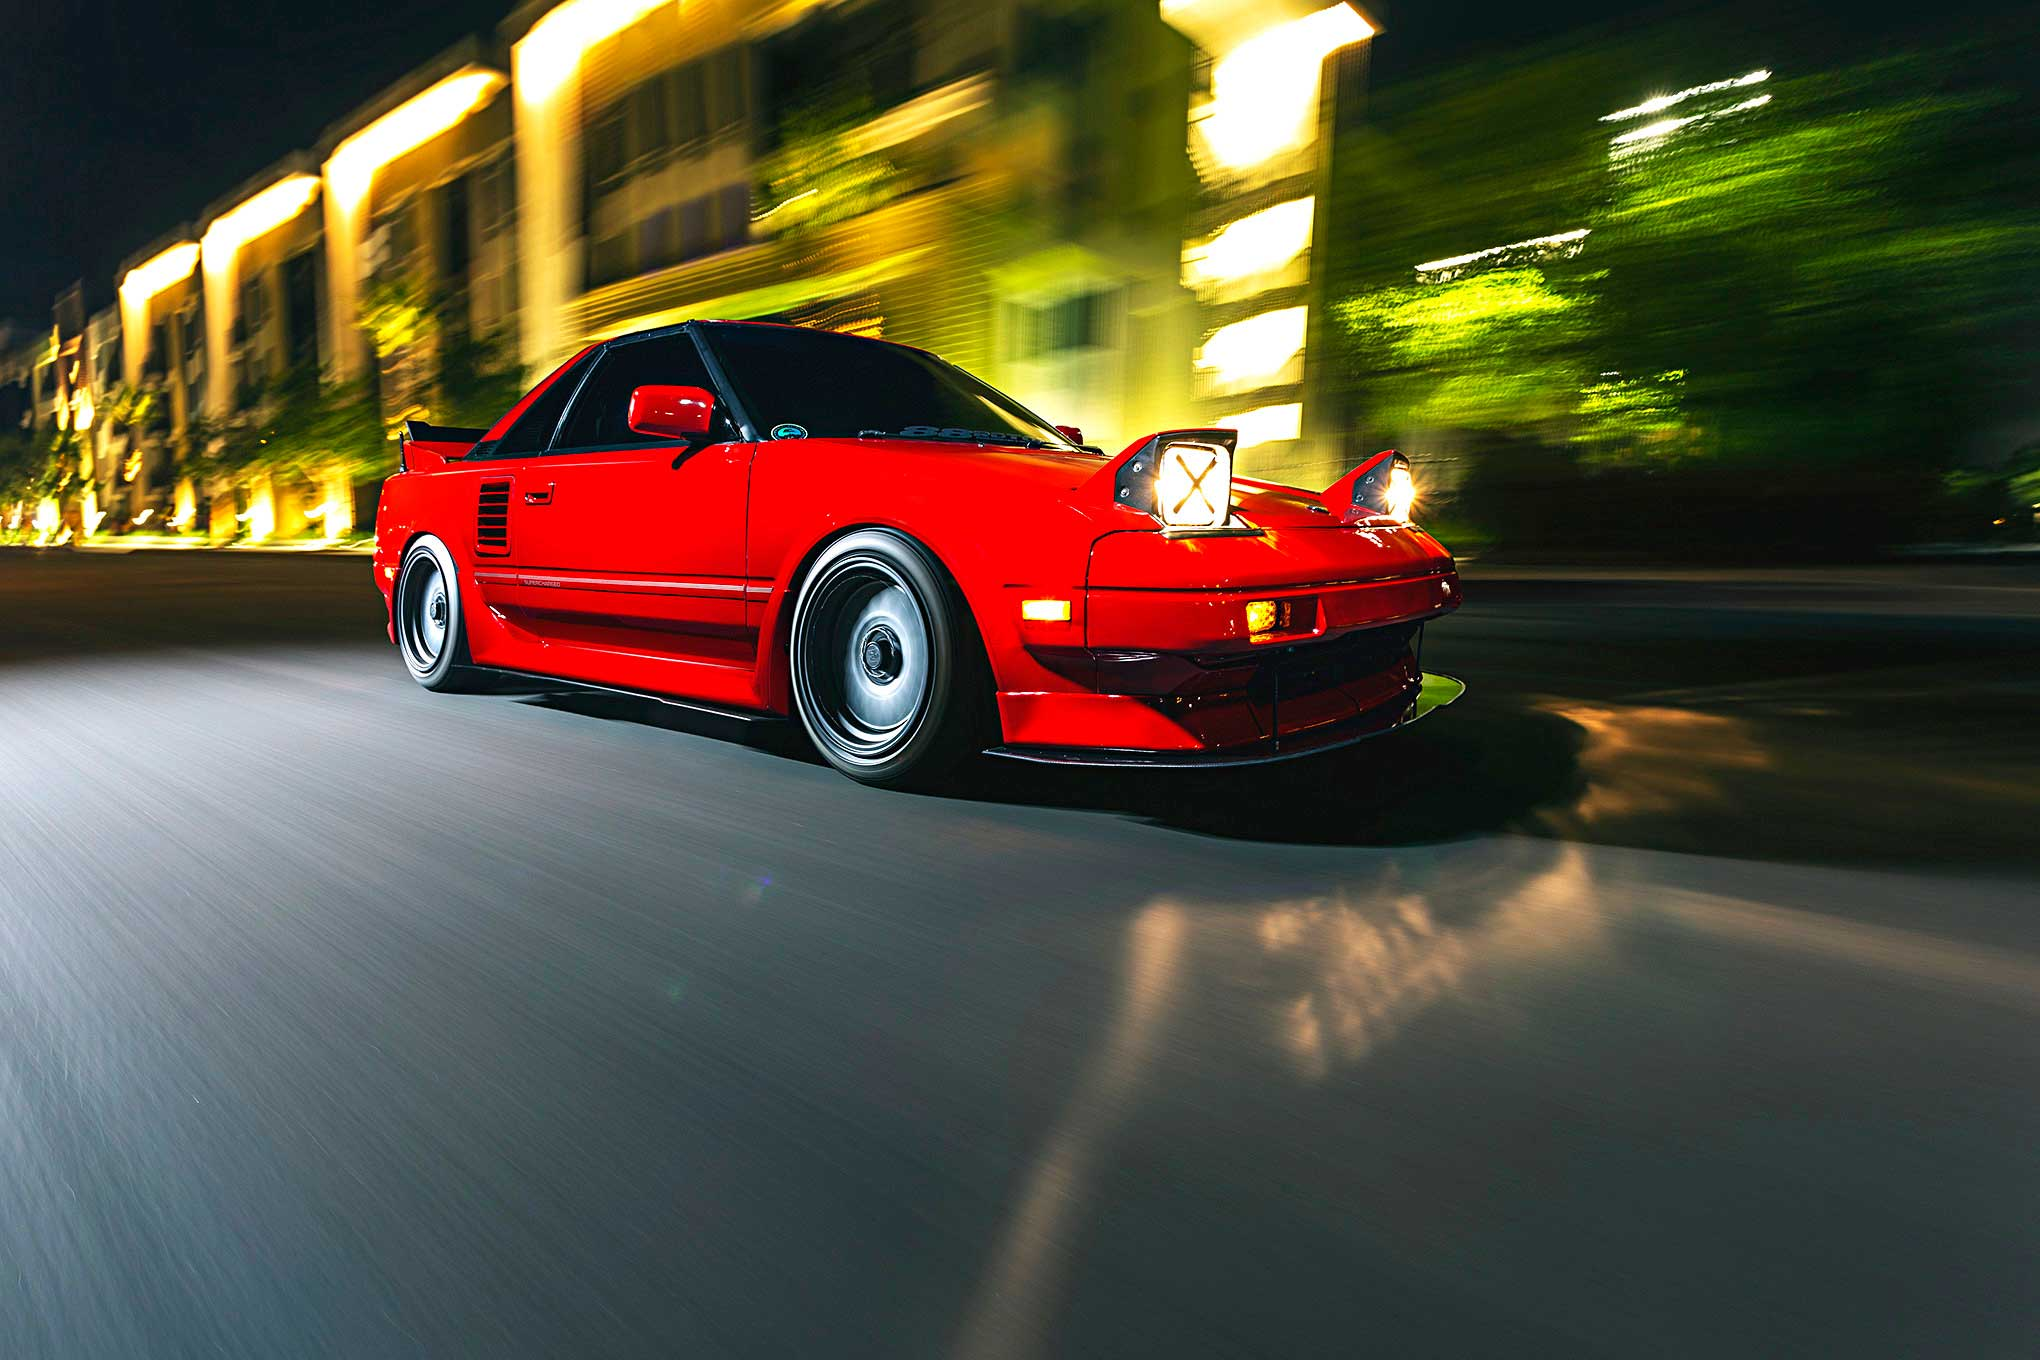 medium resolution of 1994 toyota mr2 gt s playing with fire super street magazine 1989 toyota mr2 aw11